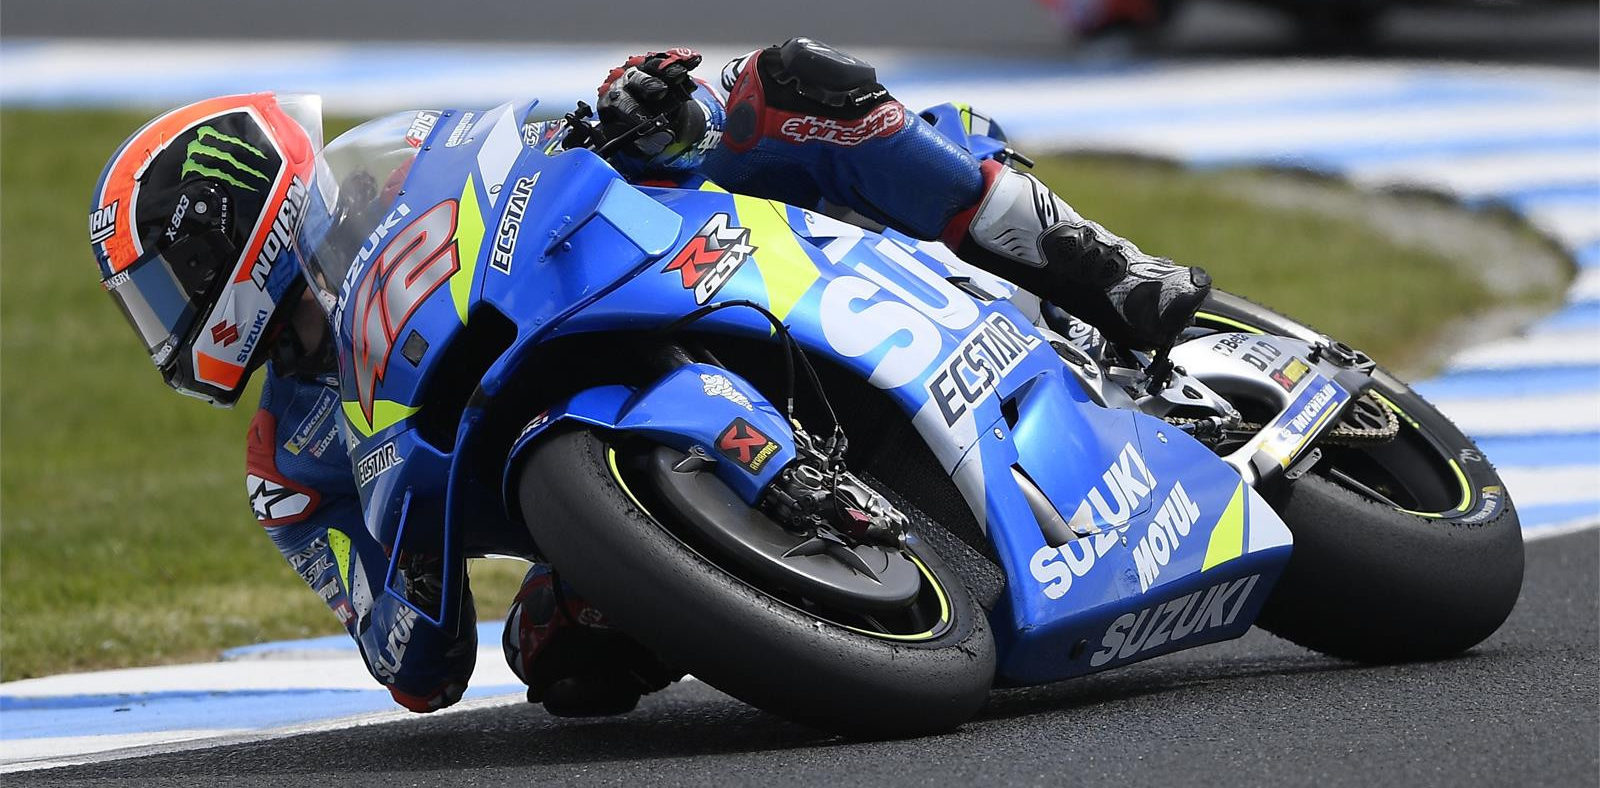 Team Suzuki ECSTAR's Alex Rins (42). Photo courtesy of Team Suzuki Press Office.